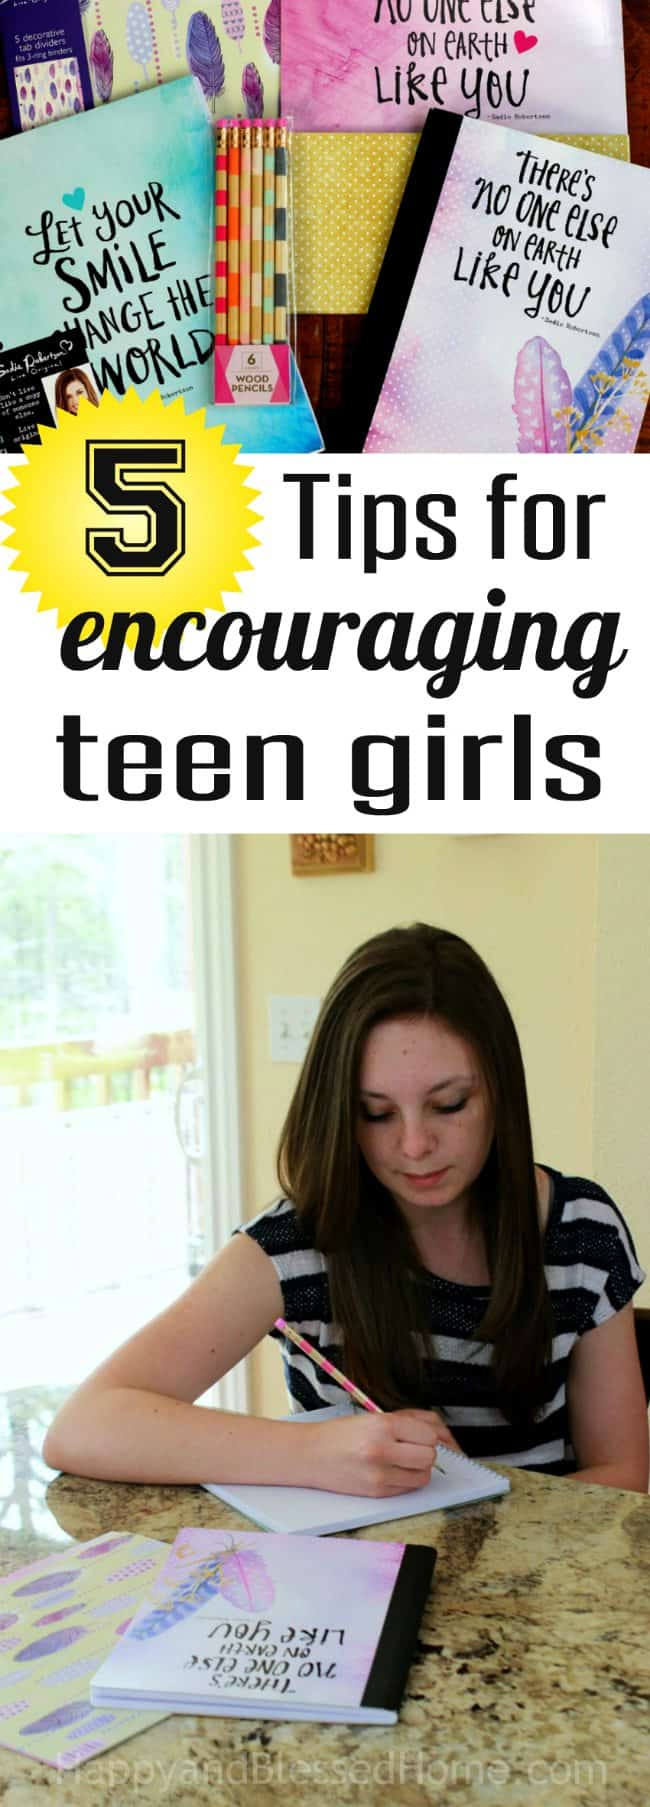 5-Tips-for-encouraging-Teen-Girls-to-set-goals-and-pursue-their-dreams-by-HappyandBlessedHome